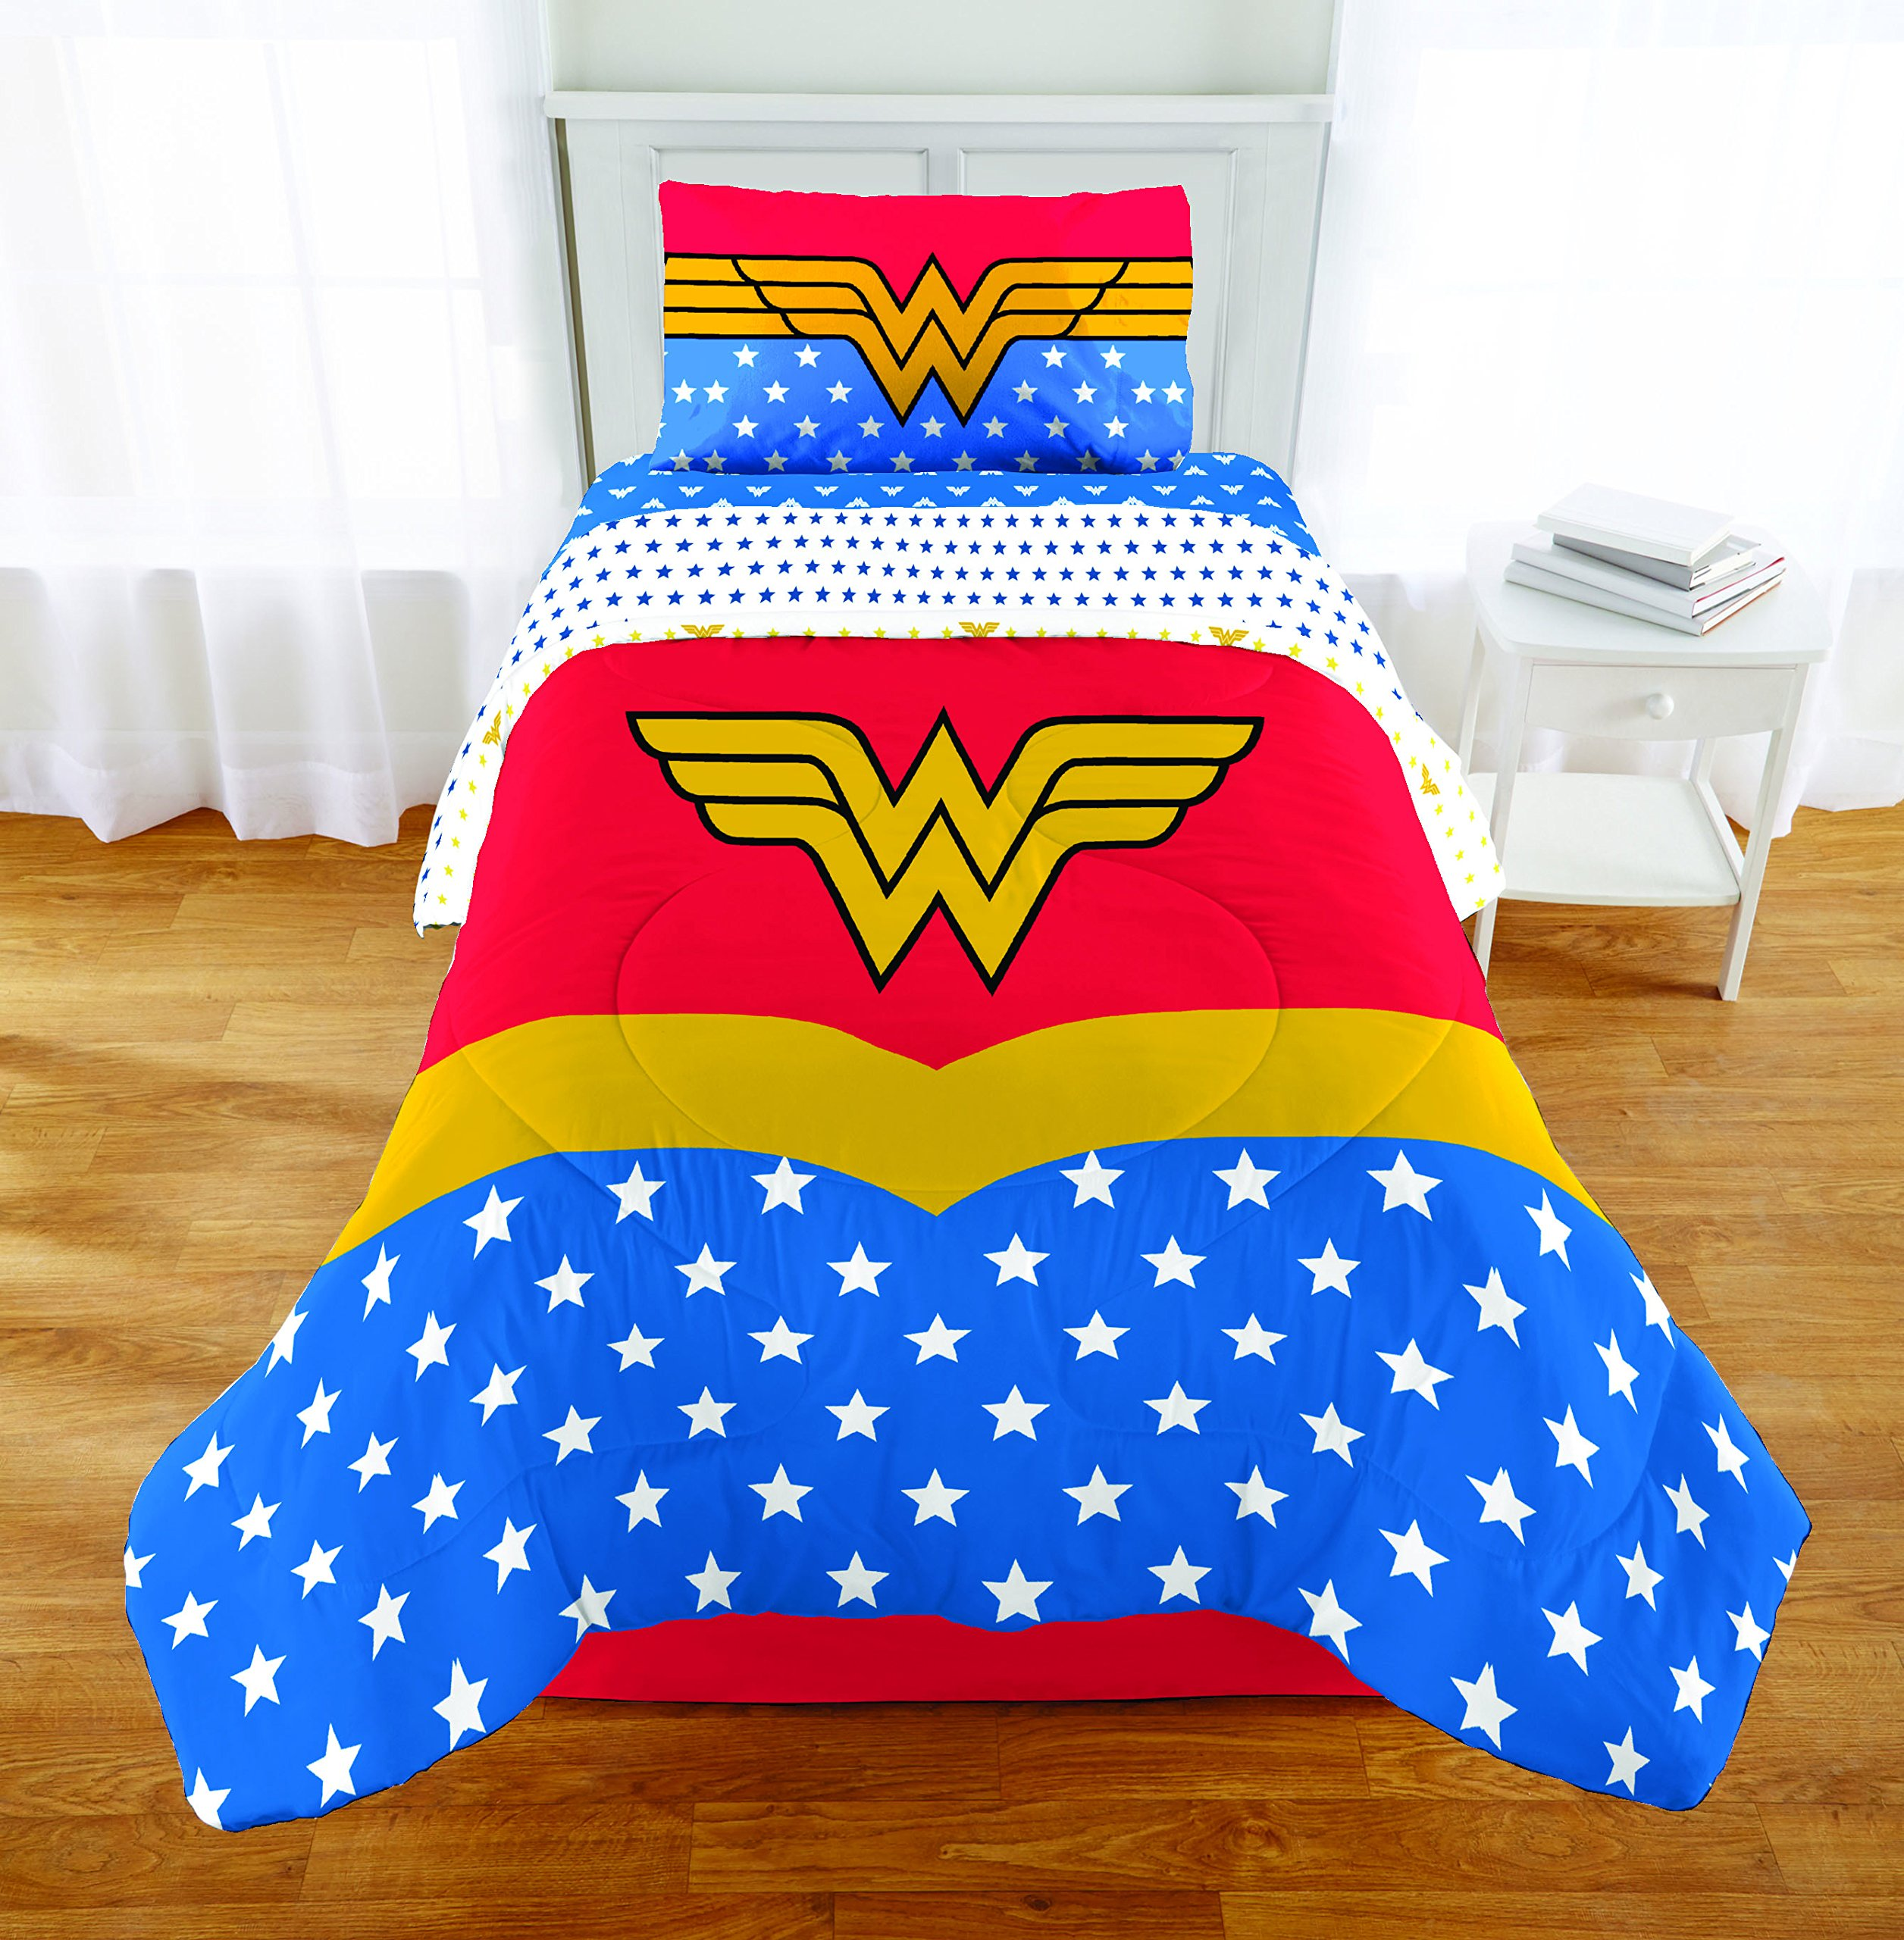 5 Piece Full size Wonder Woman Bedding Set Includes 4pc Full Sheet Set and 1 T/Full Comforter